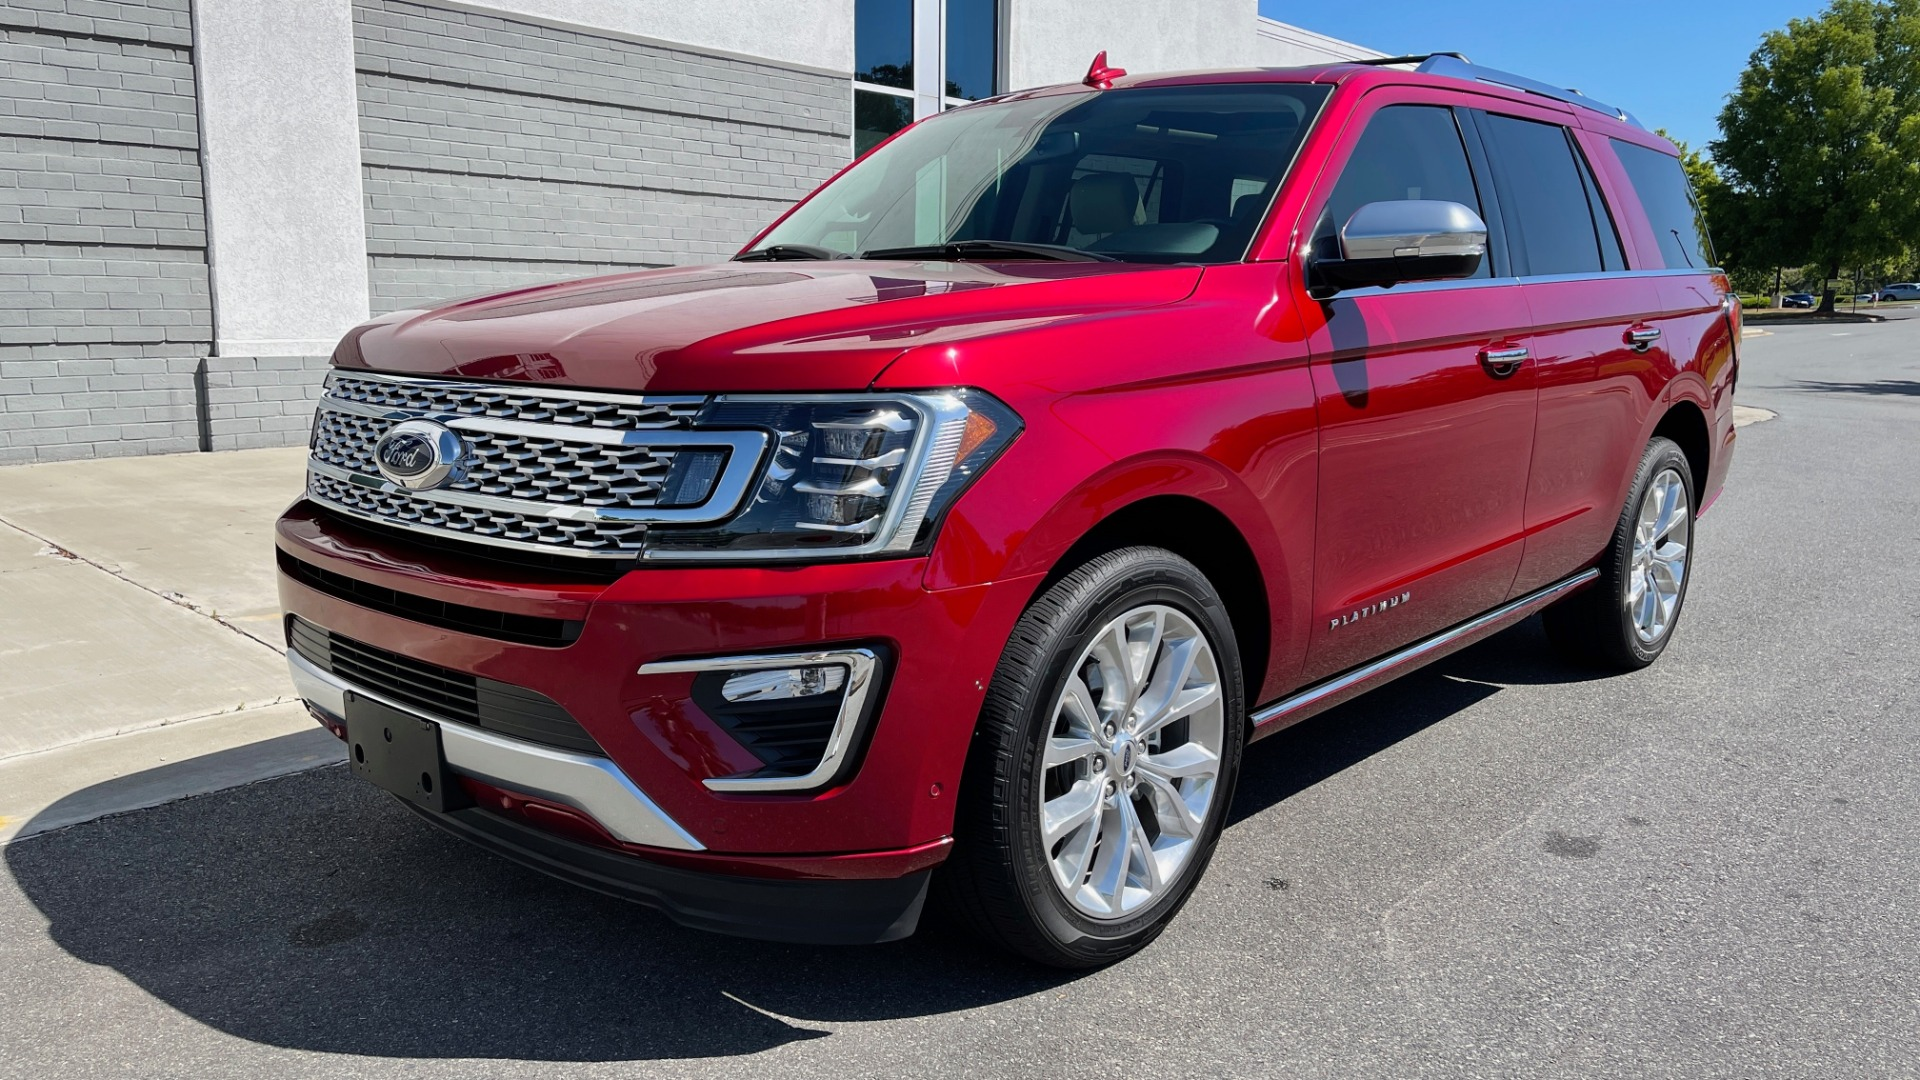 Used 2019 Ford EXPEDITION PLATINUM / 3.5L ECOBOOST / NAV / WIFI / SUNROOF / 3-ROW / REARVIEW for sale Sold at Formula Imports in Charlotte NC 28227 3